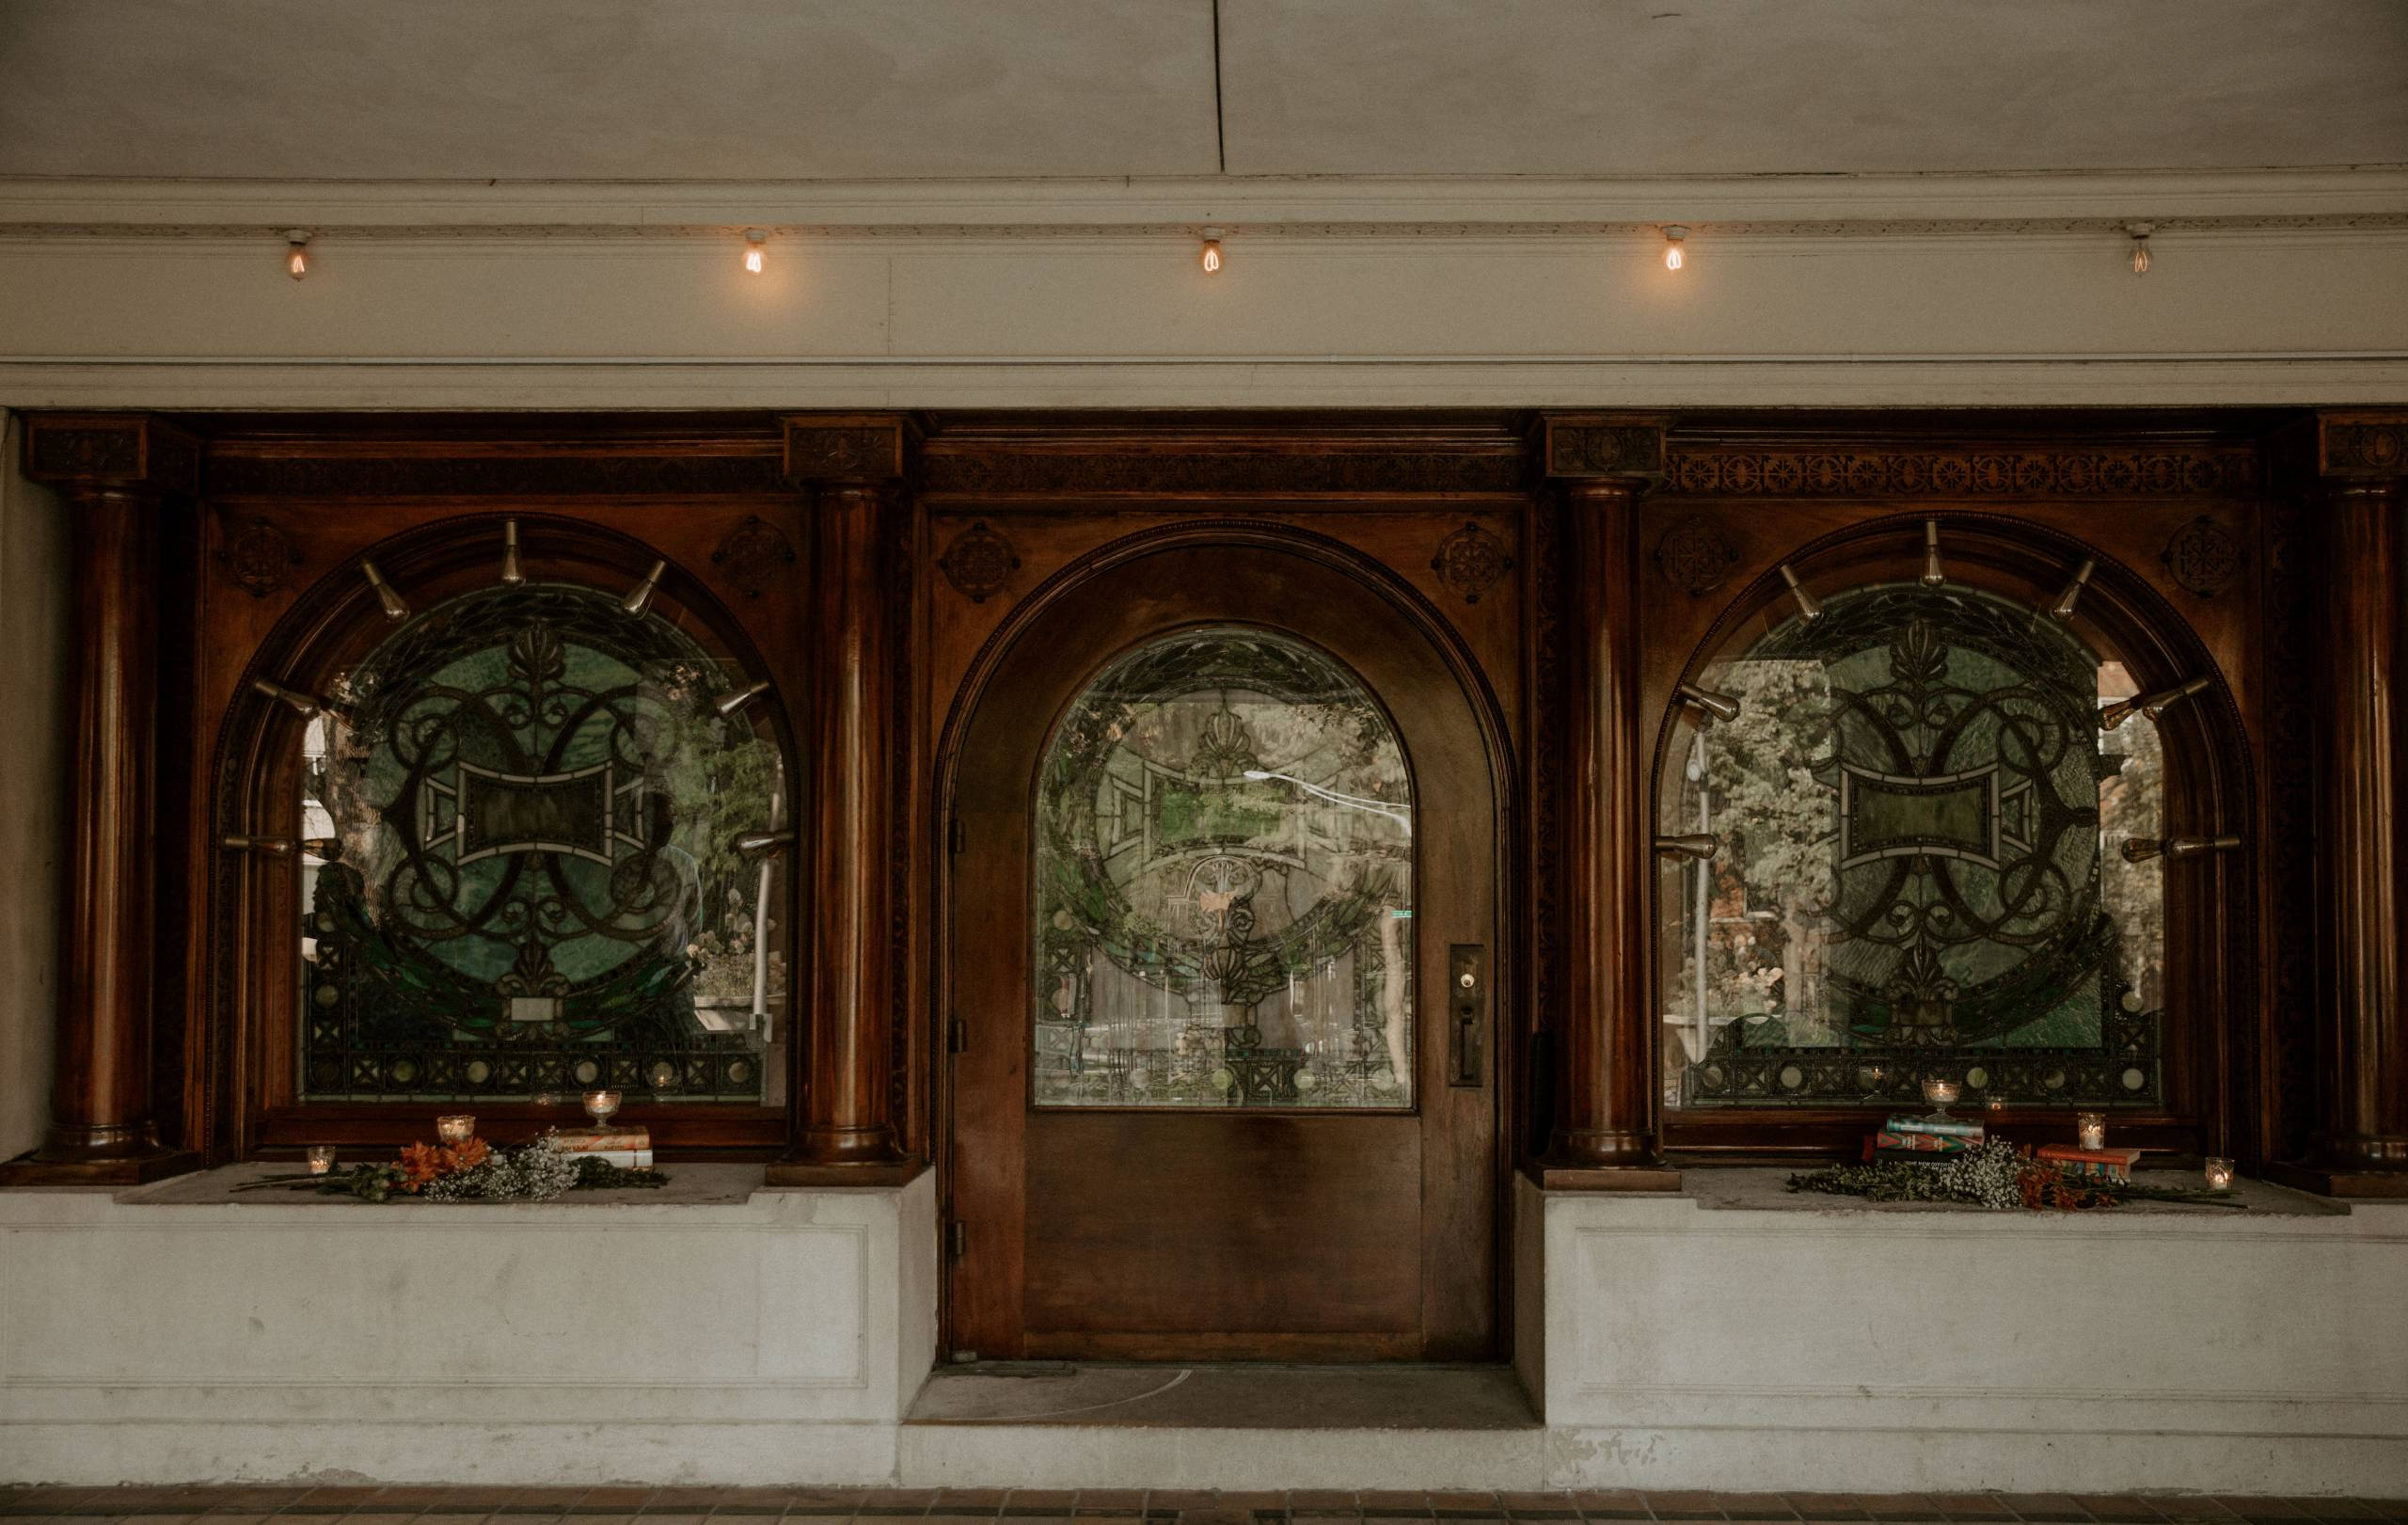 View of the Stained Glass Windows and Entry Door of Pleasant Home dressed up for a wedding